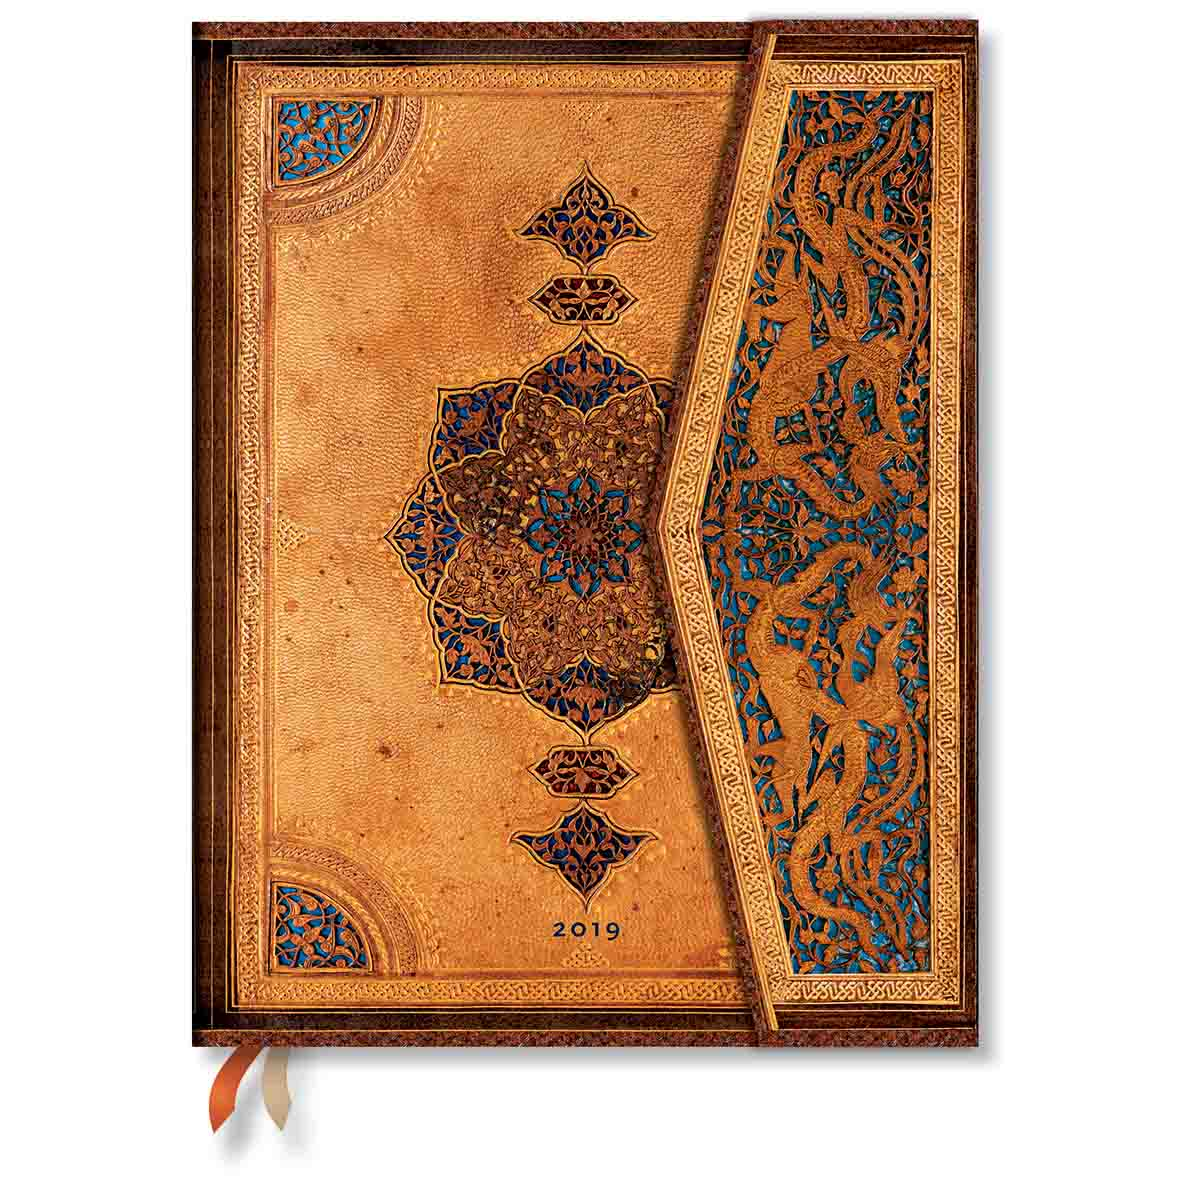 Paperblanks Ultra Safavid 2019 Week-At-A-Time Planner